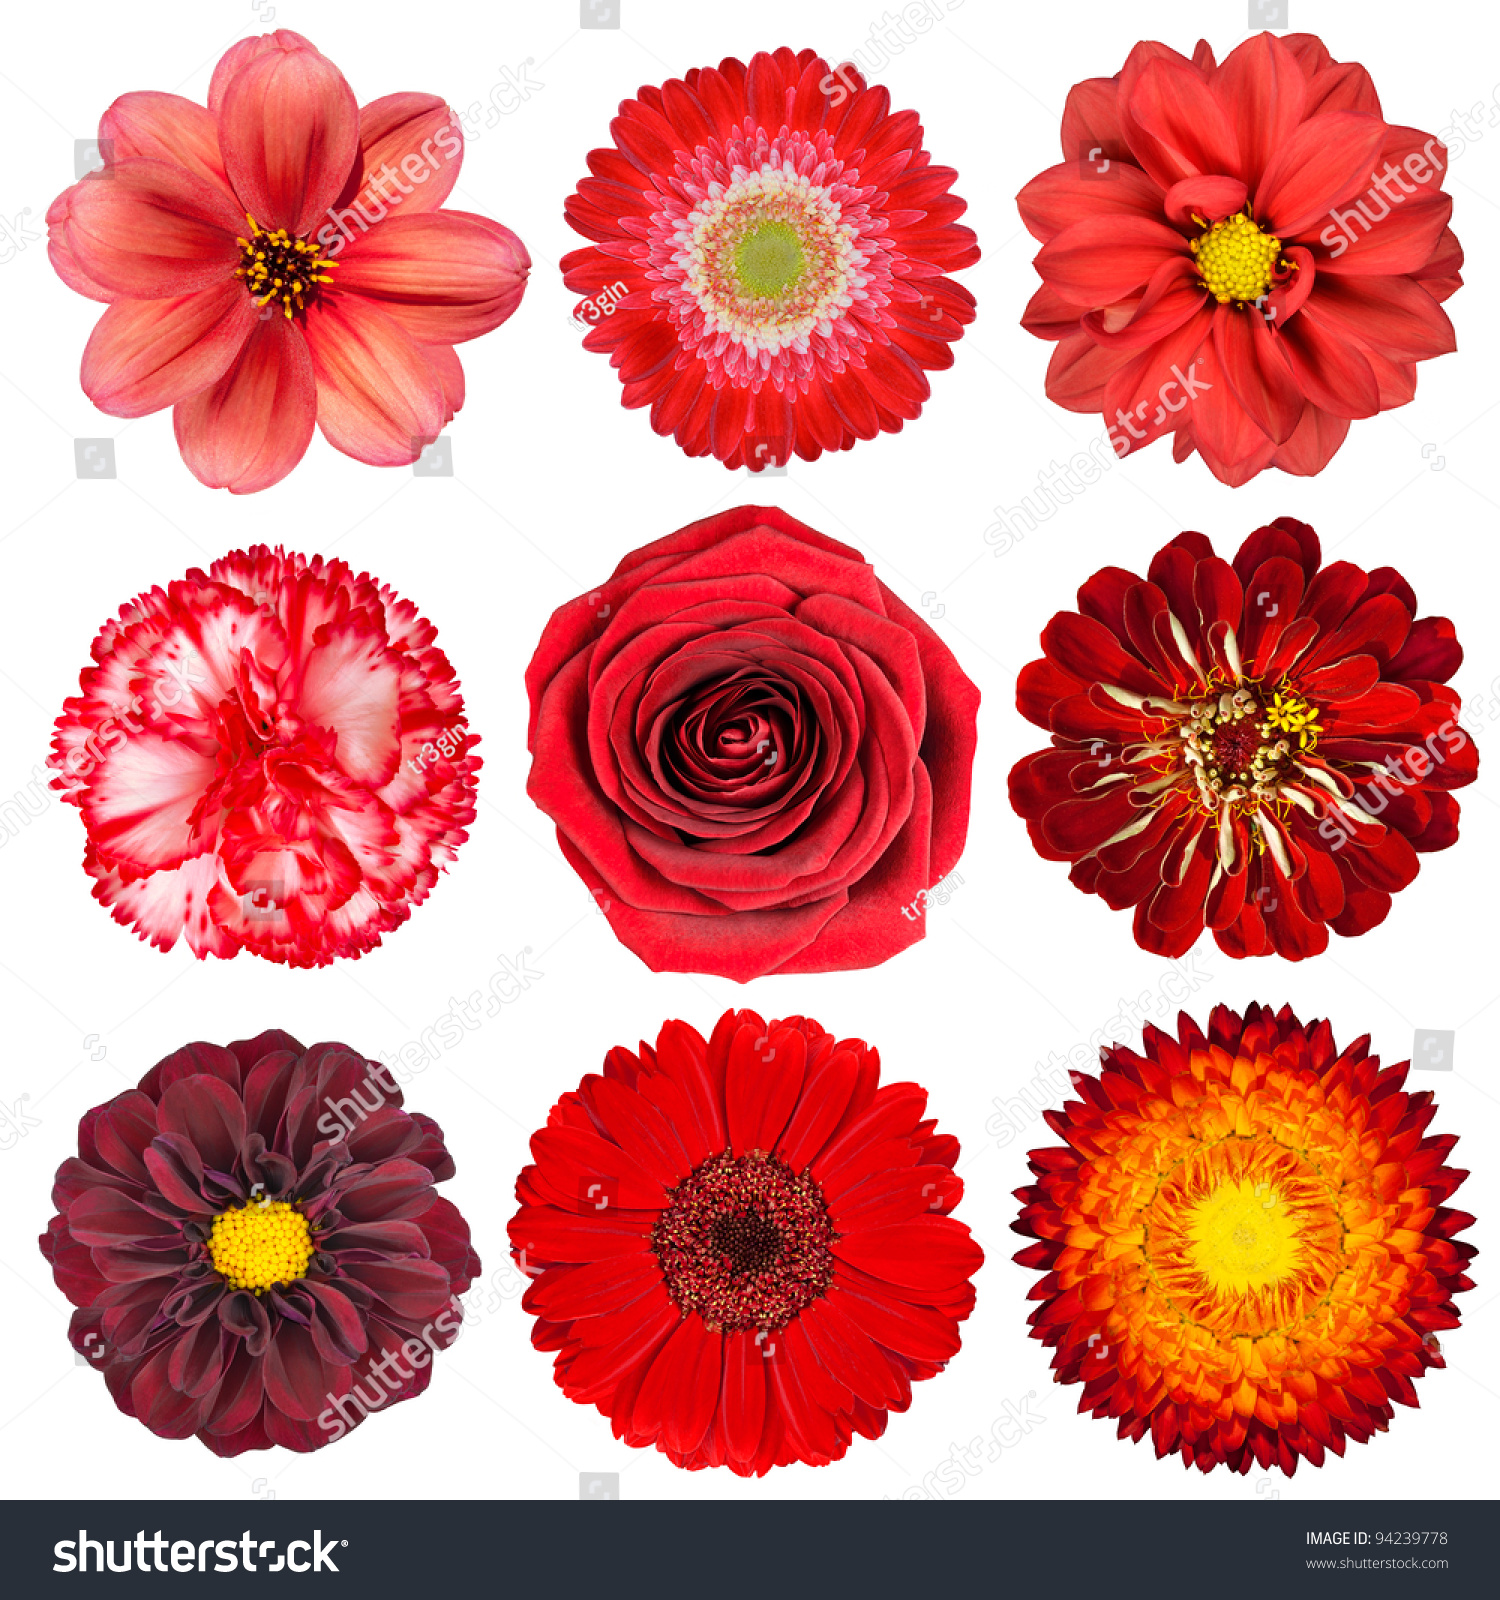 Stock images royalty free images vectors shutterstock similar images to selection of various red flowers isolated on white background set of nine dahlia gerber daisy carnation rose zinnia flowers izmirmasajfo Choice Image